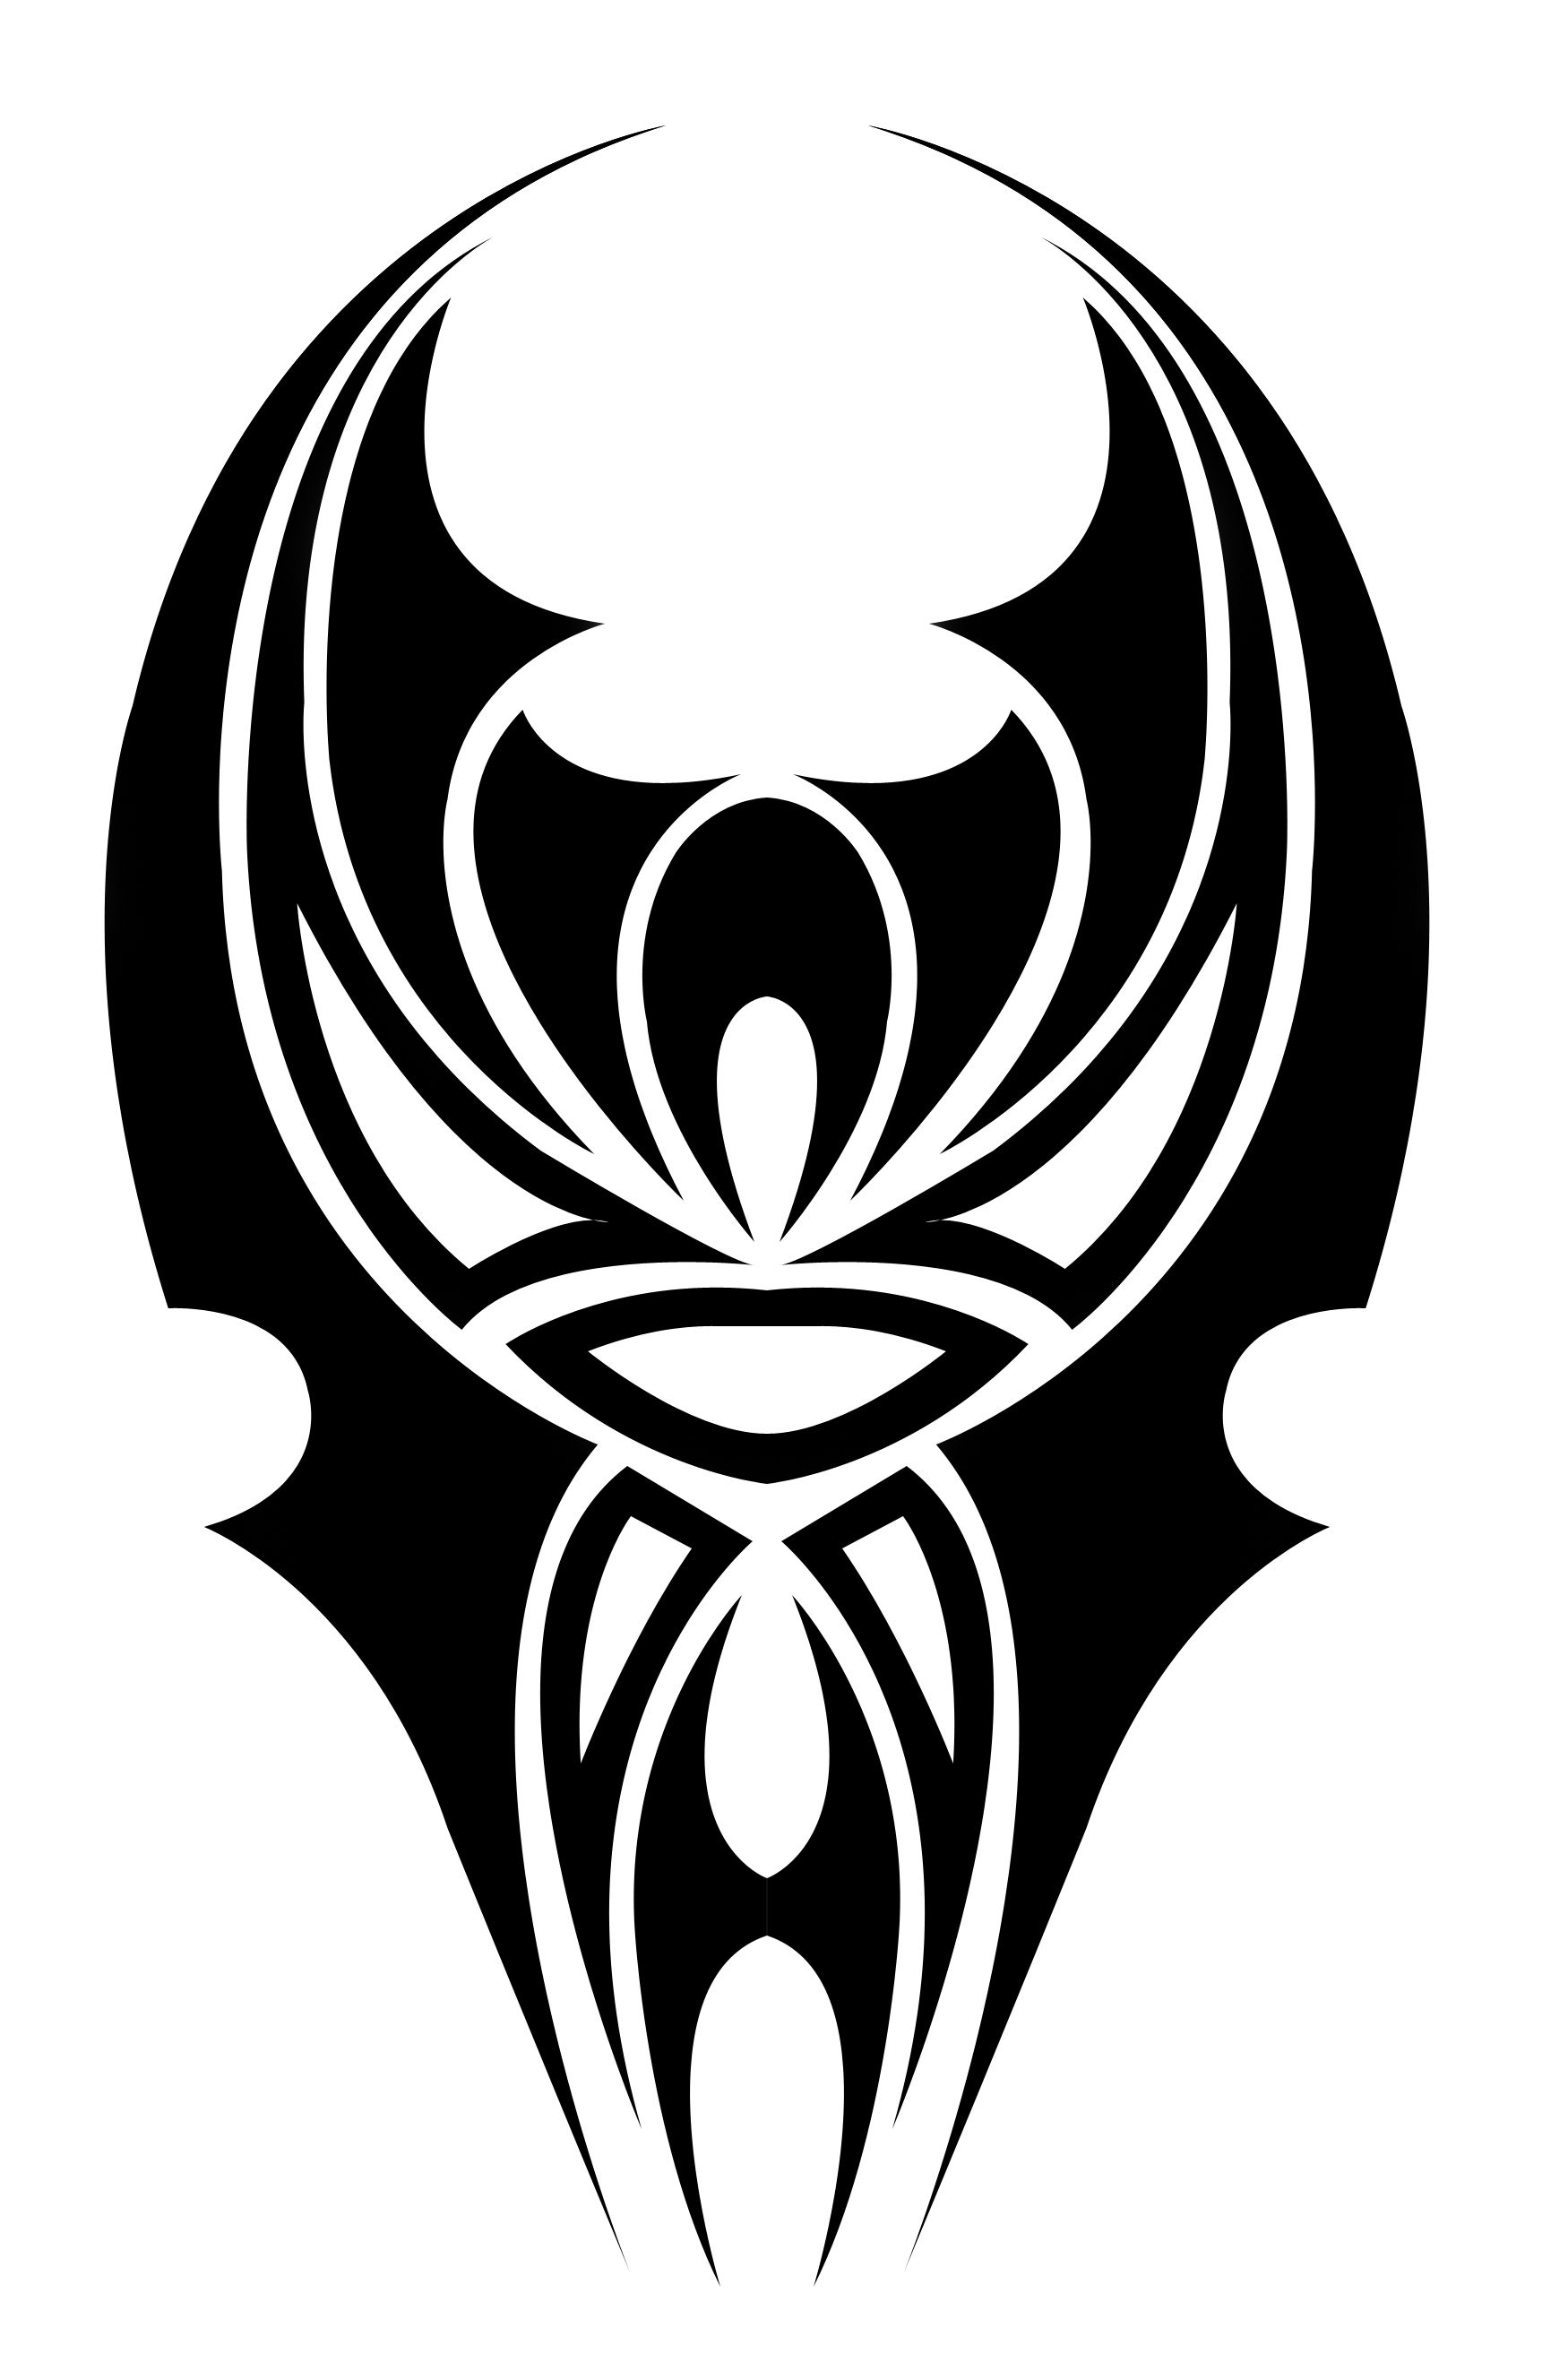 Tribal tattoo 7 key of life by amir malka on deviantart season one of my friends wanted me to design a tattoo for her she wanted it to combain this symbol with some tribal at first i thought to design the tribal ar biocorpaavc Gallery